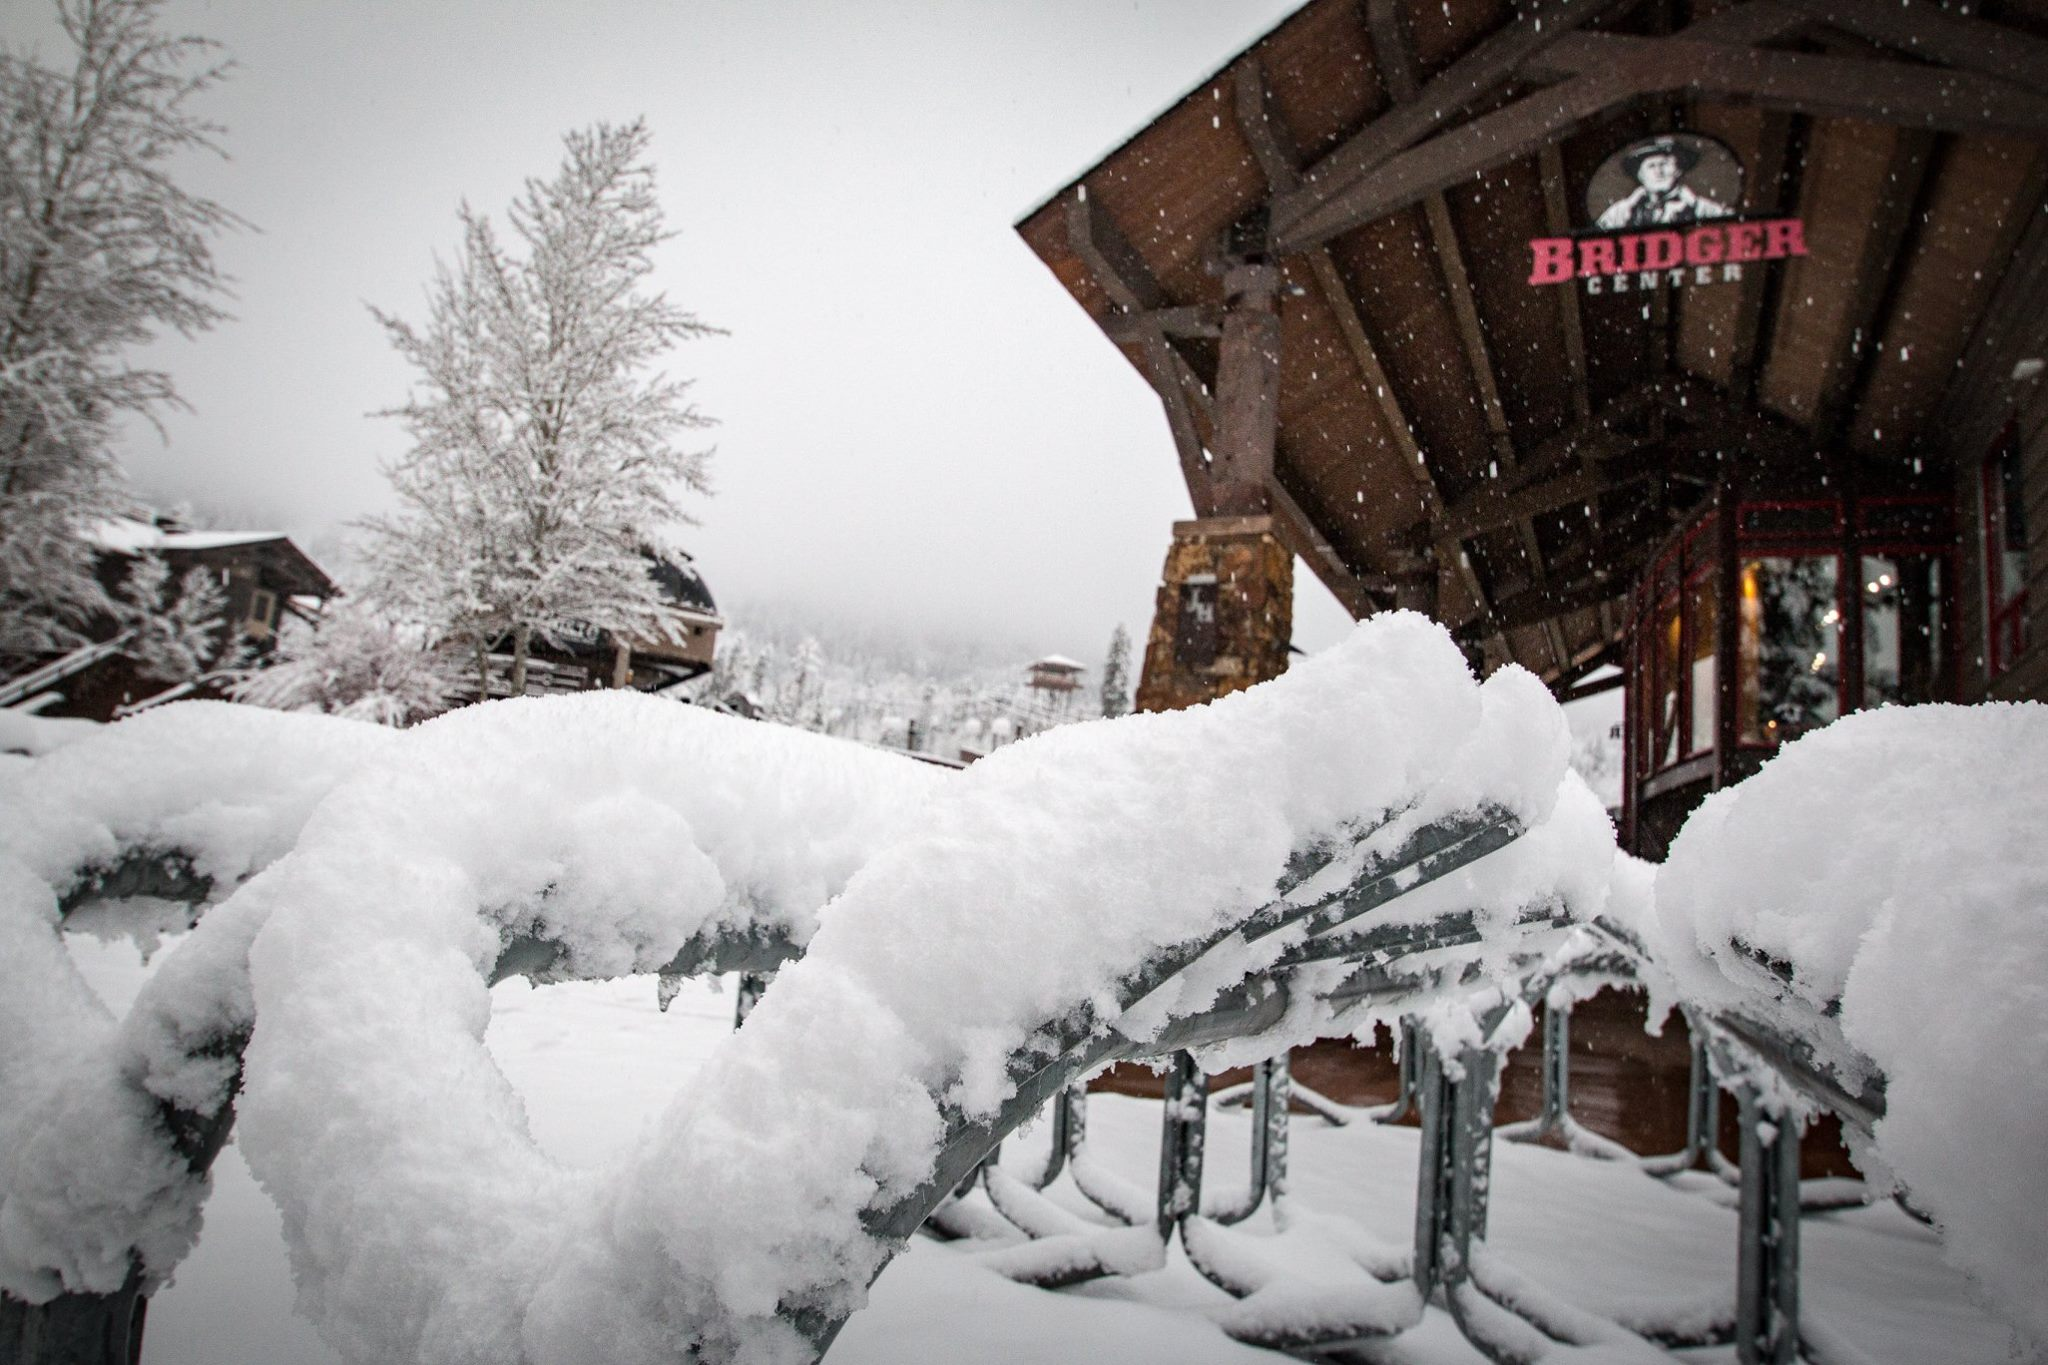 jackson hole snow, where is it snowing, where has it snowed